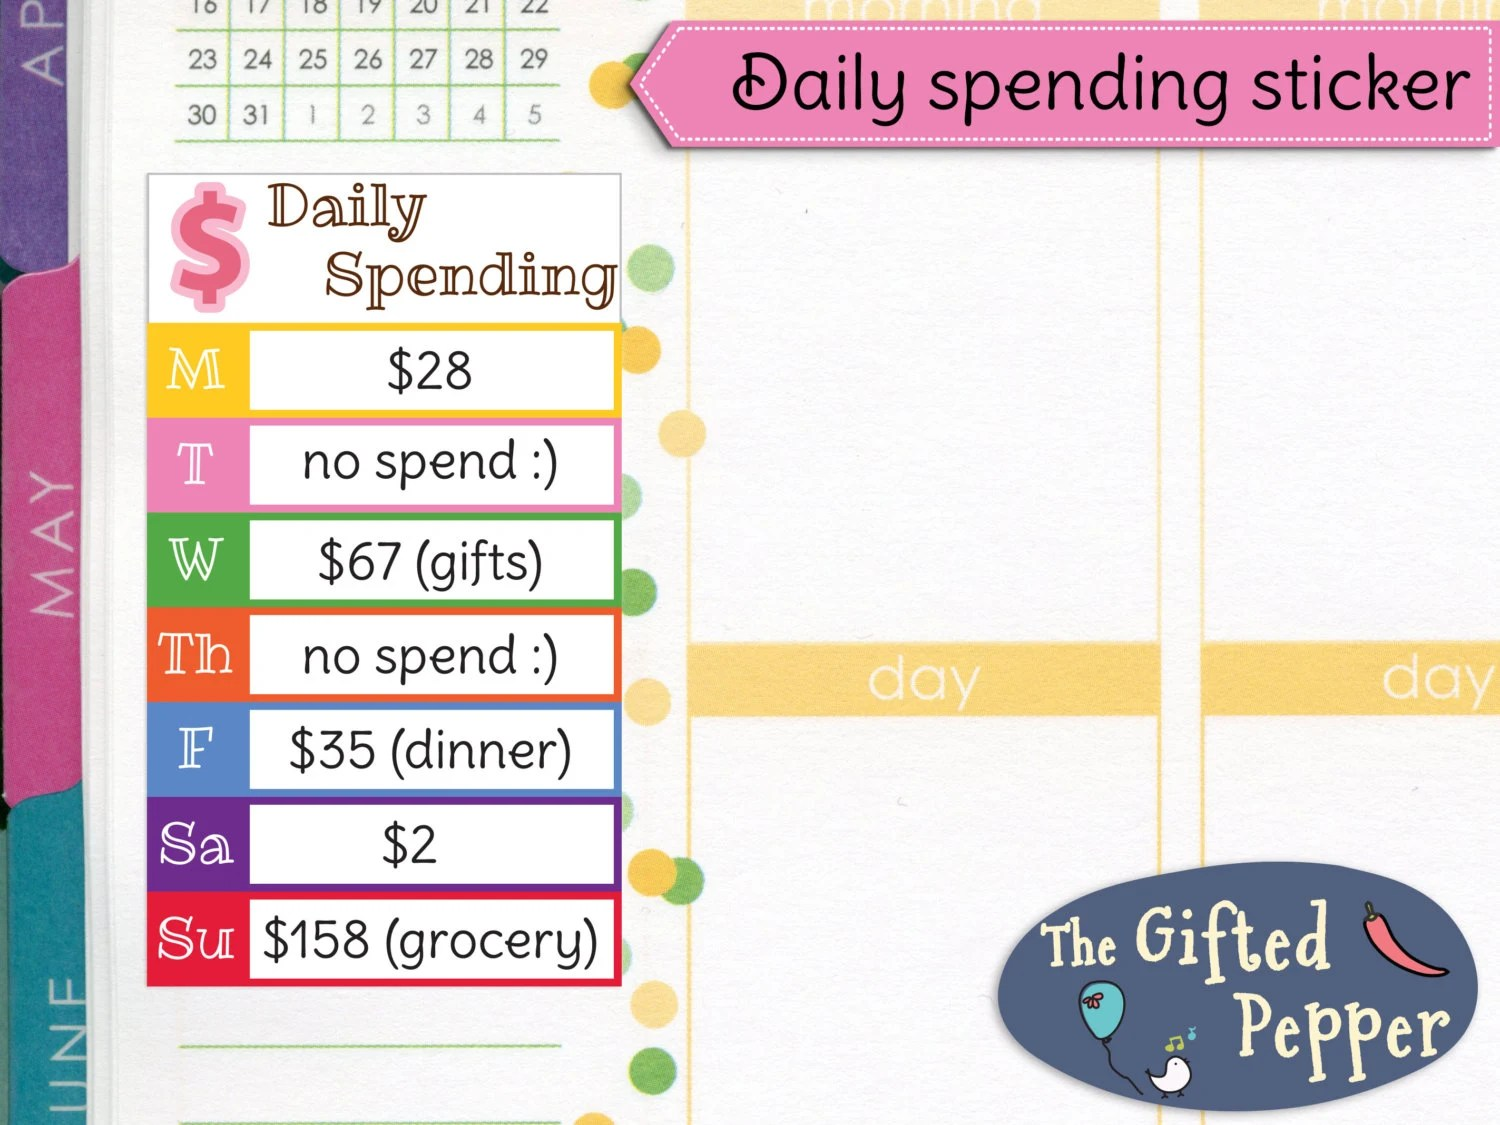 Daily Spending Stickers Printable Expense Log Budget Plan